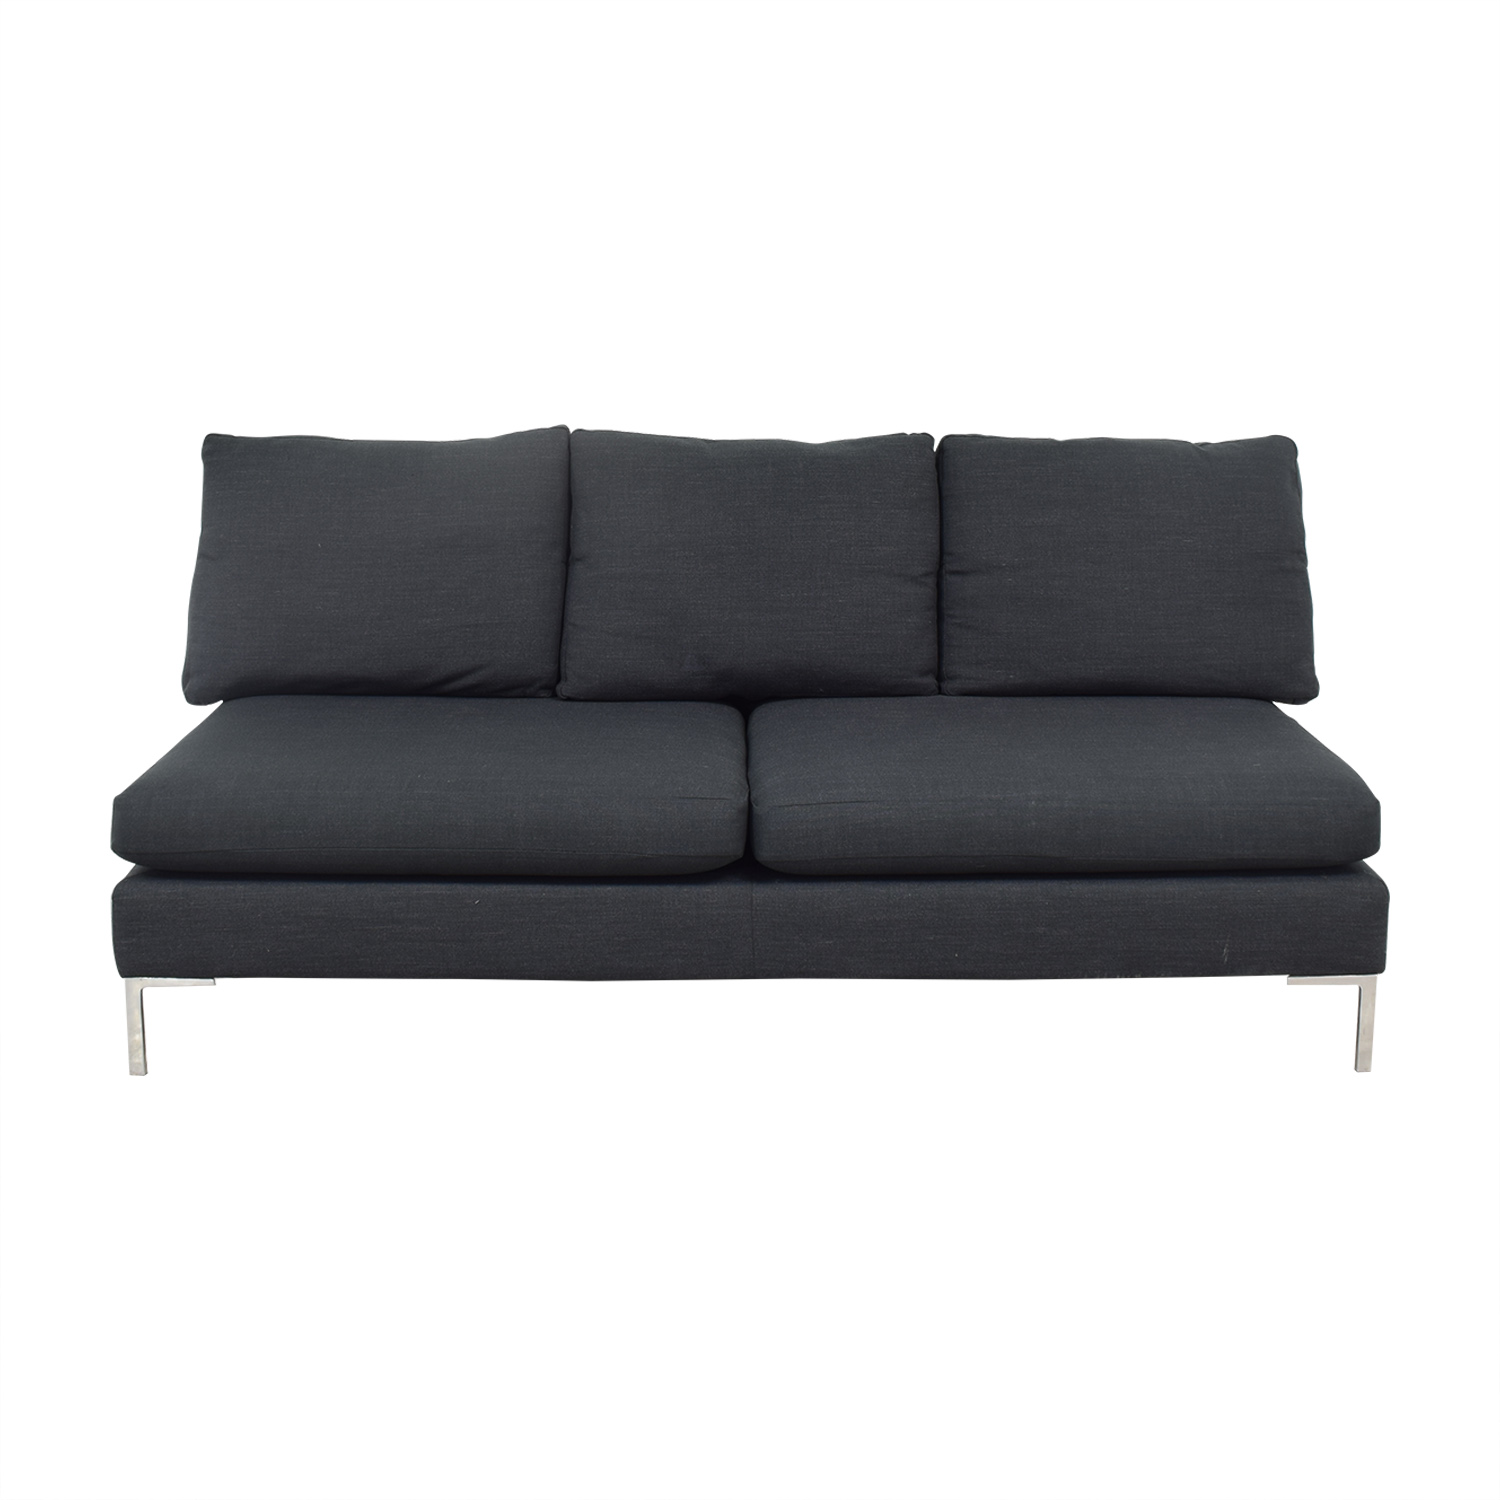 buy Marks & Spencer Marks & Spencer Loveseat online